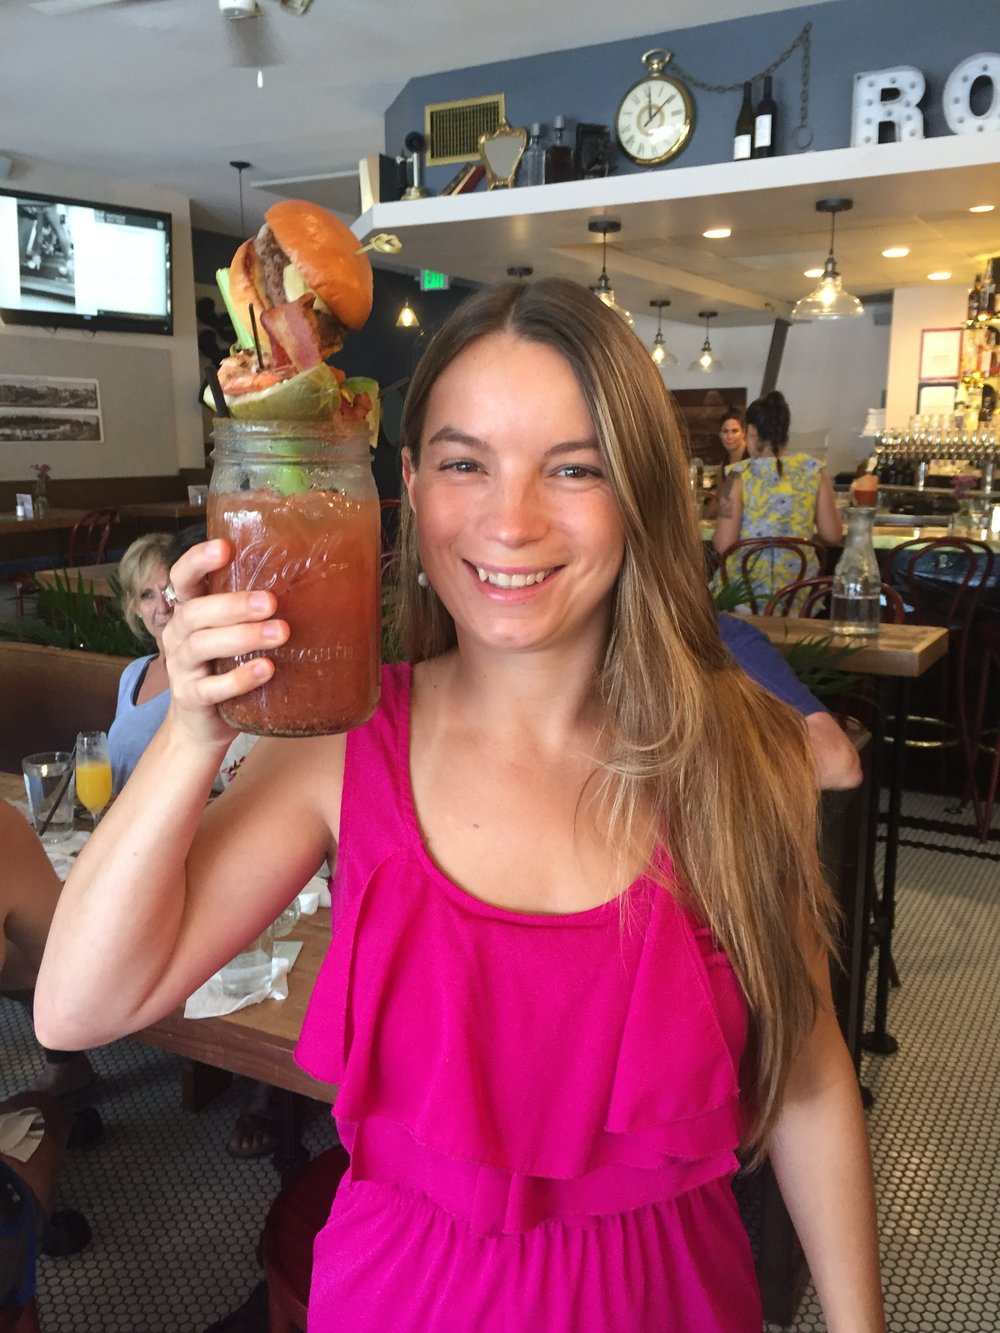 Liz McCray - Founder, Bloody Mary Obsessedhttps://www.bloodymaryobsessed.com/